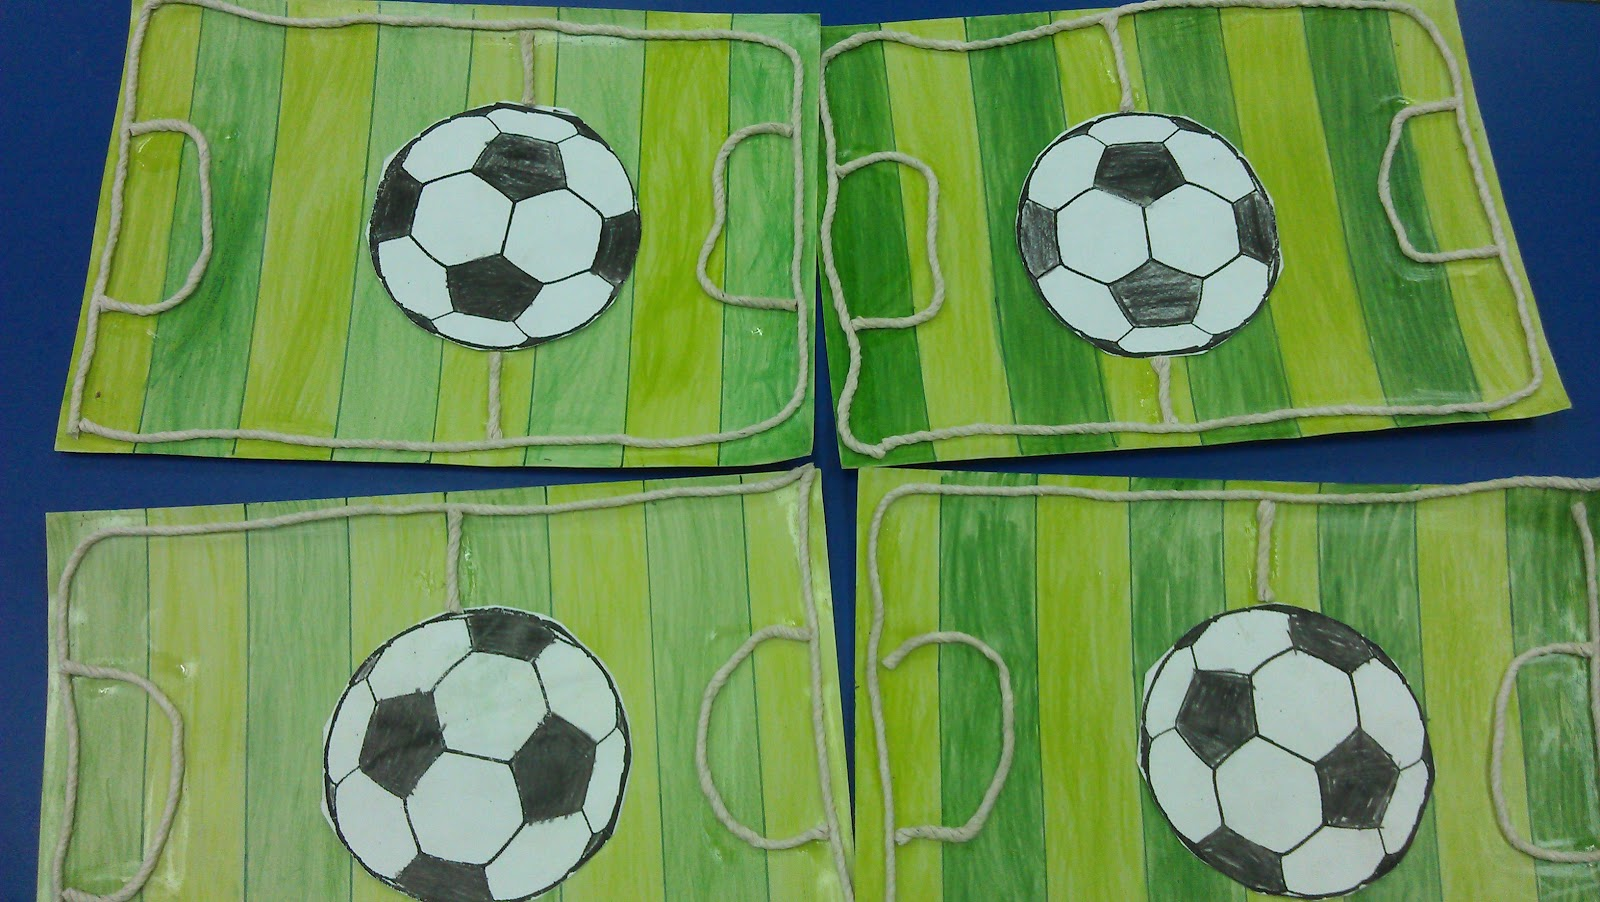 Football field craft easy craft ideas for Football crafts for preschoolers